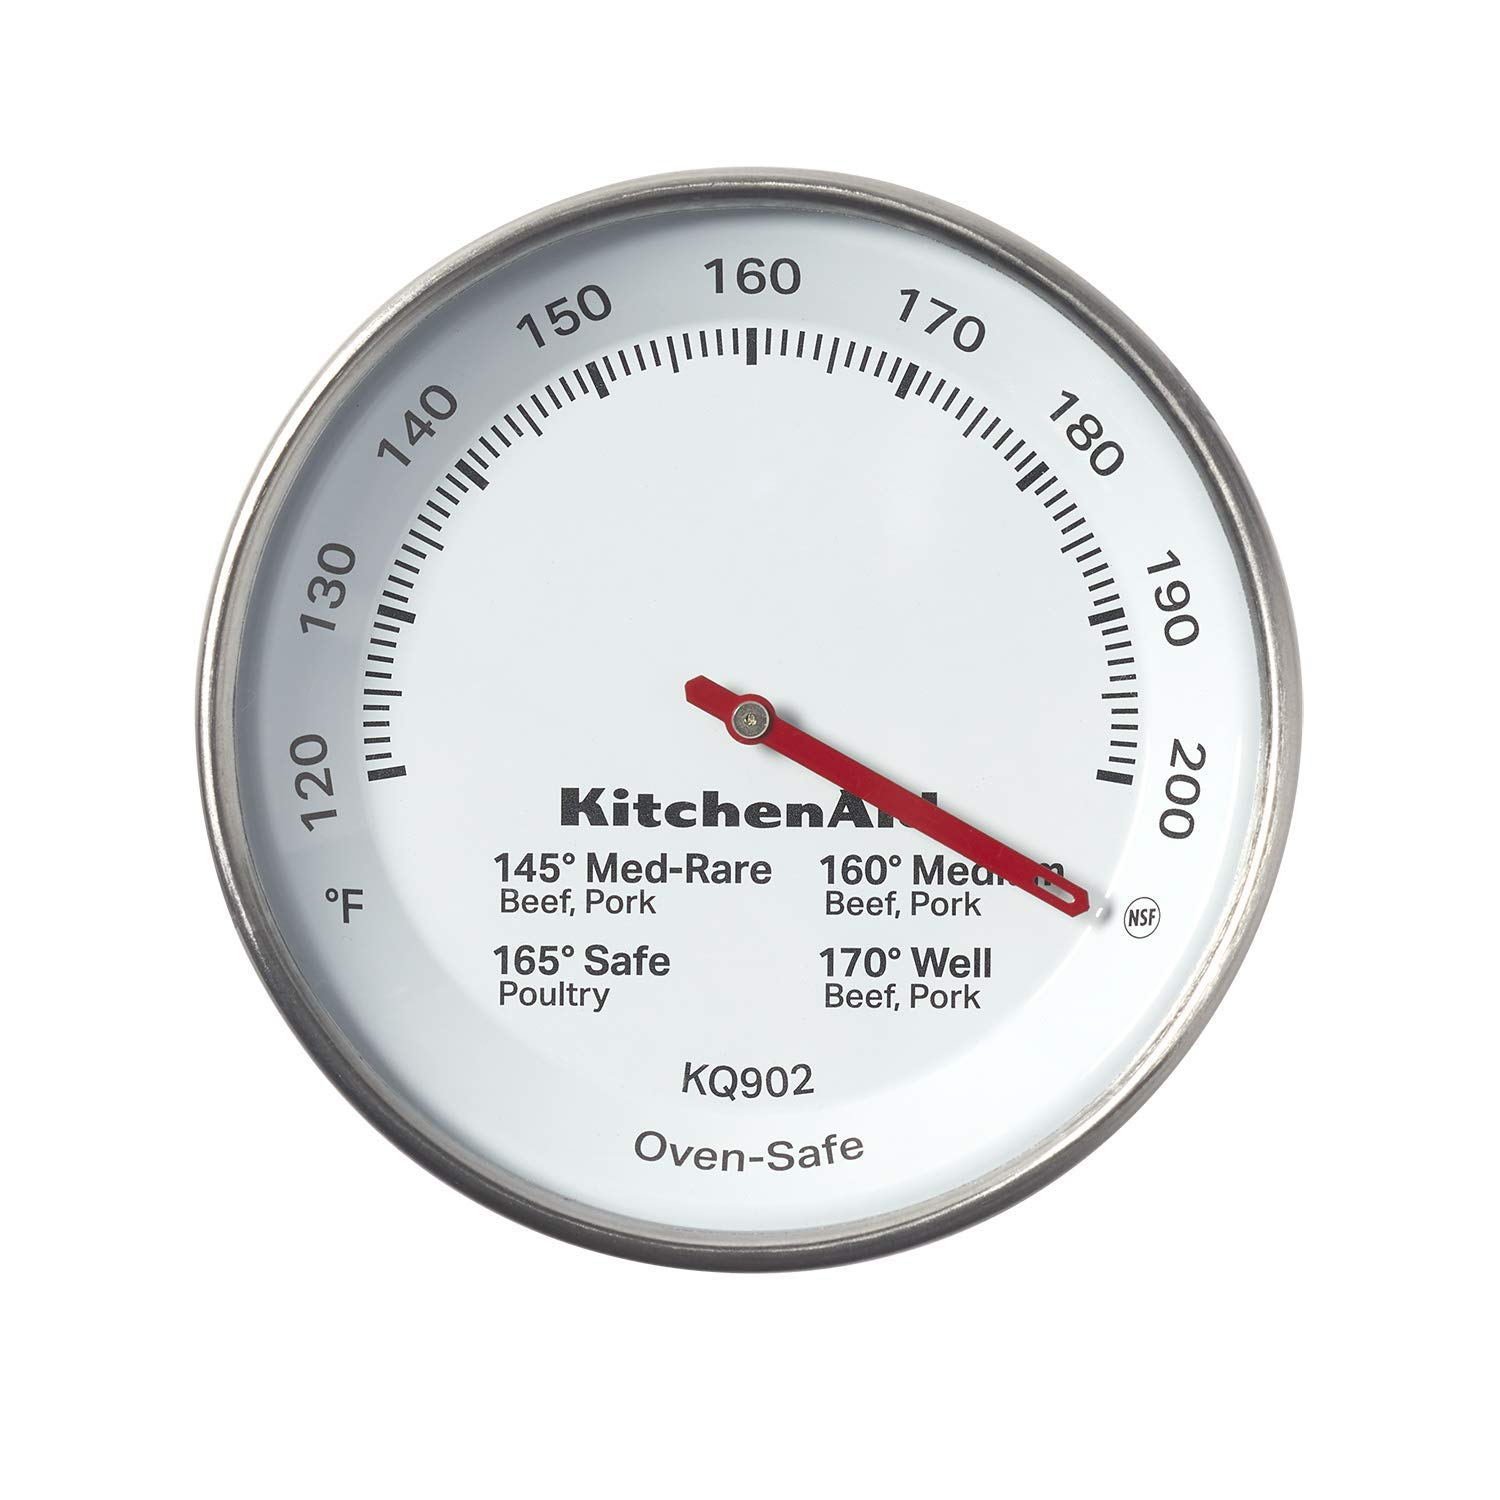 KitchenAid KQ902 Leave-in Meat Thermometer, TEMPERATURE RANGE: 120°F to 200°F, Black (Renewed)